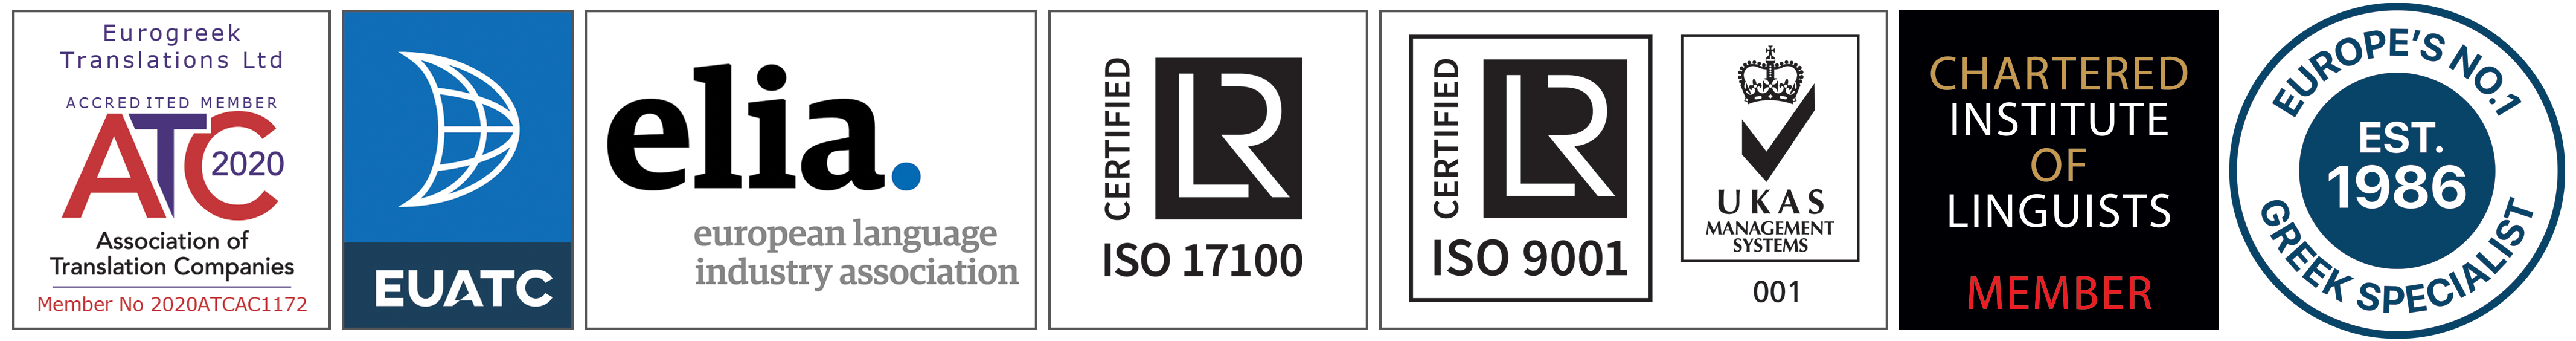 EuroGreek Translations ISO Certifications